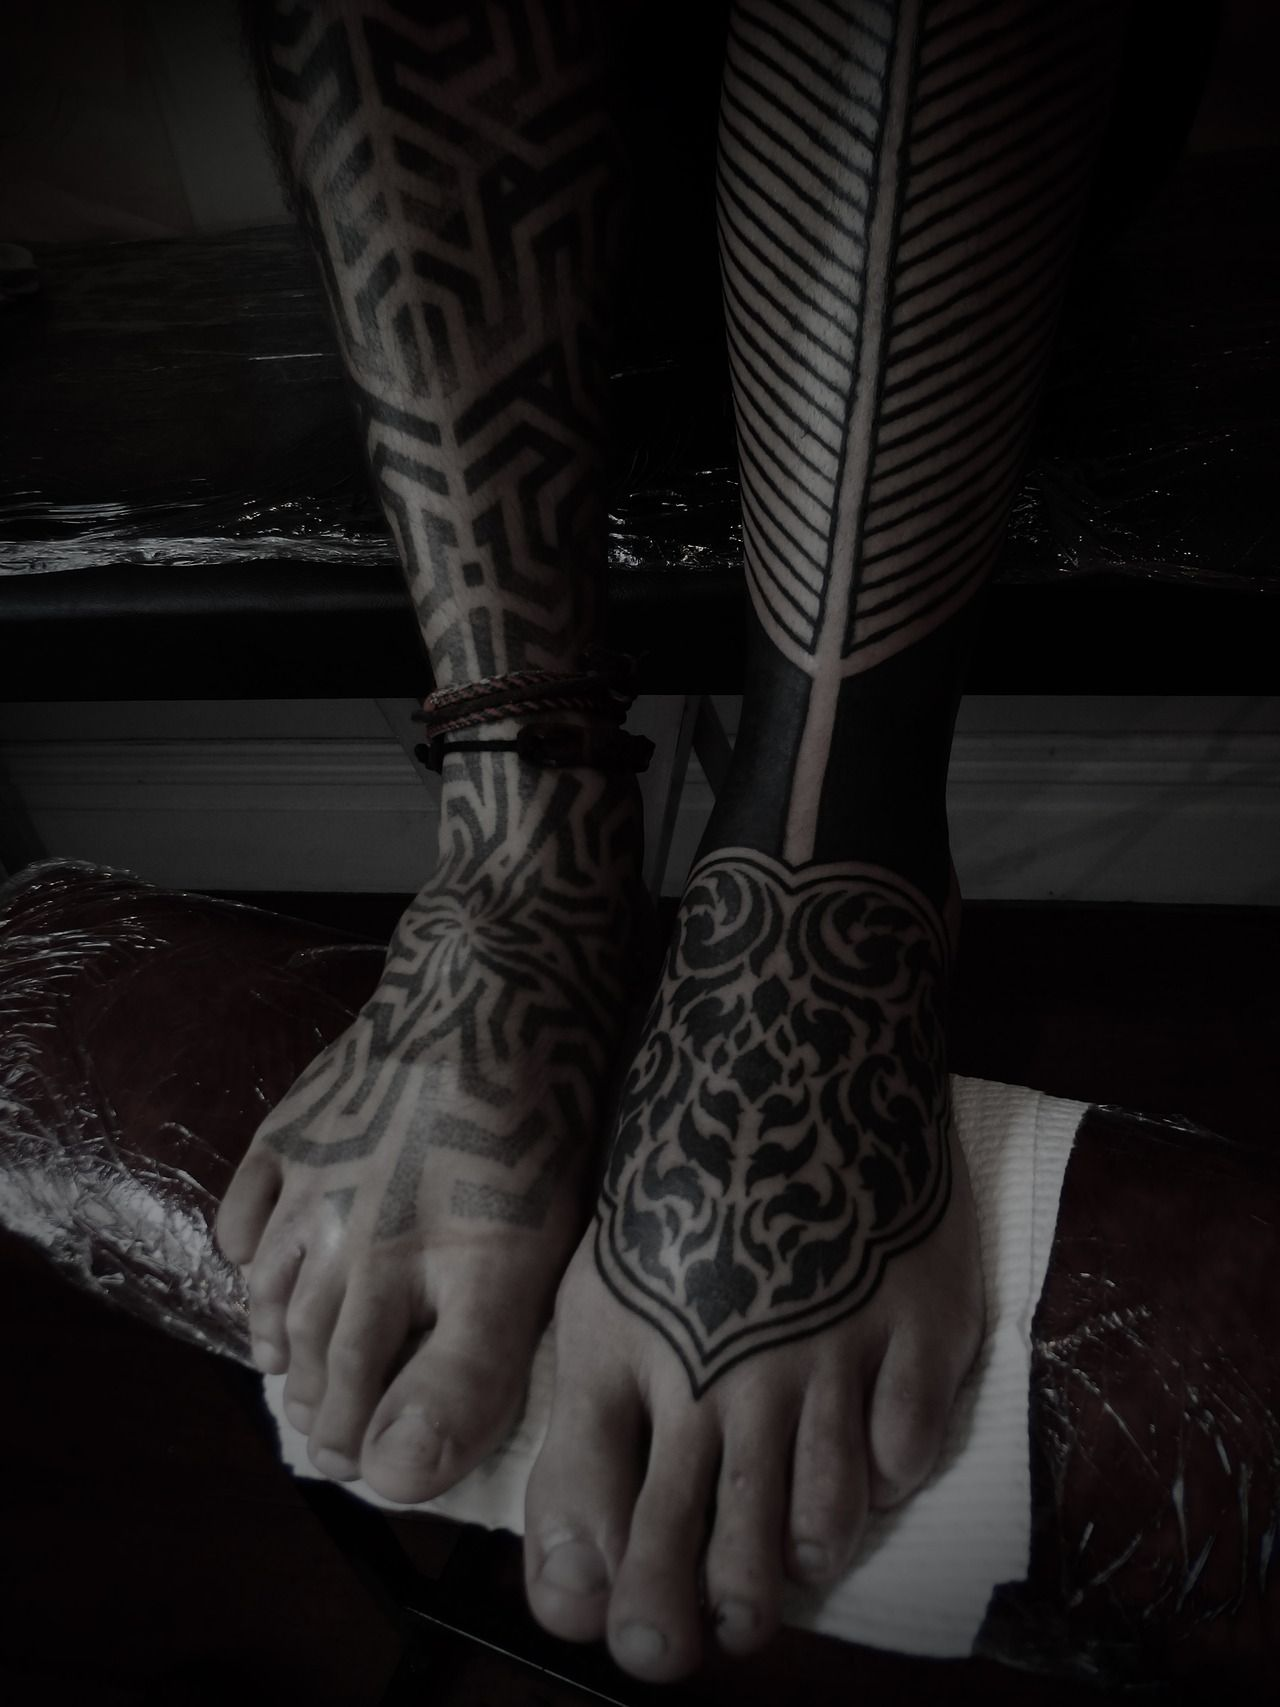 Guy Le Tatooer His right leg was done by Tomas Tomas . The